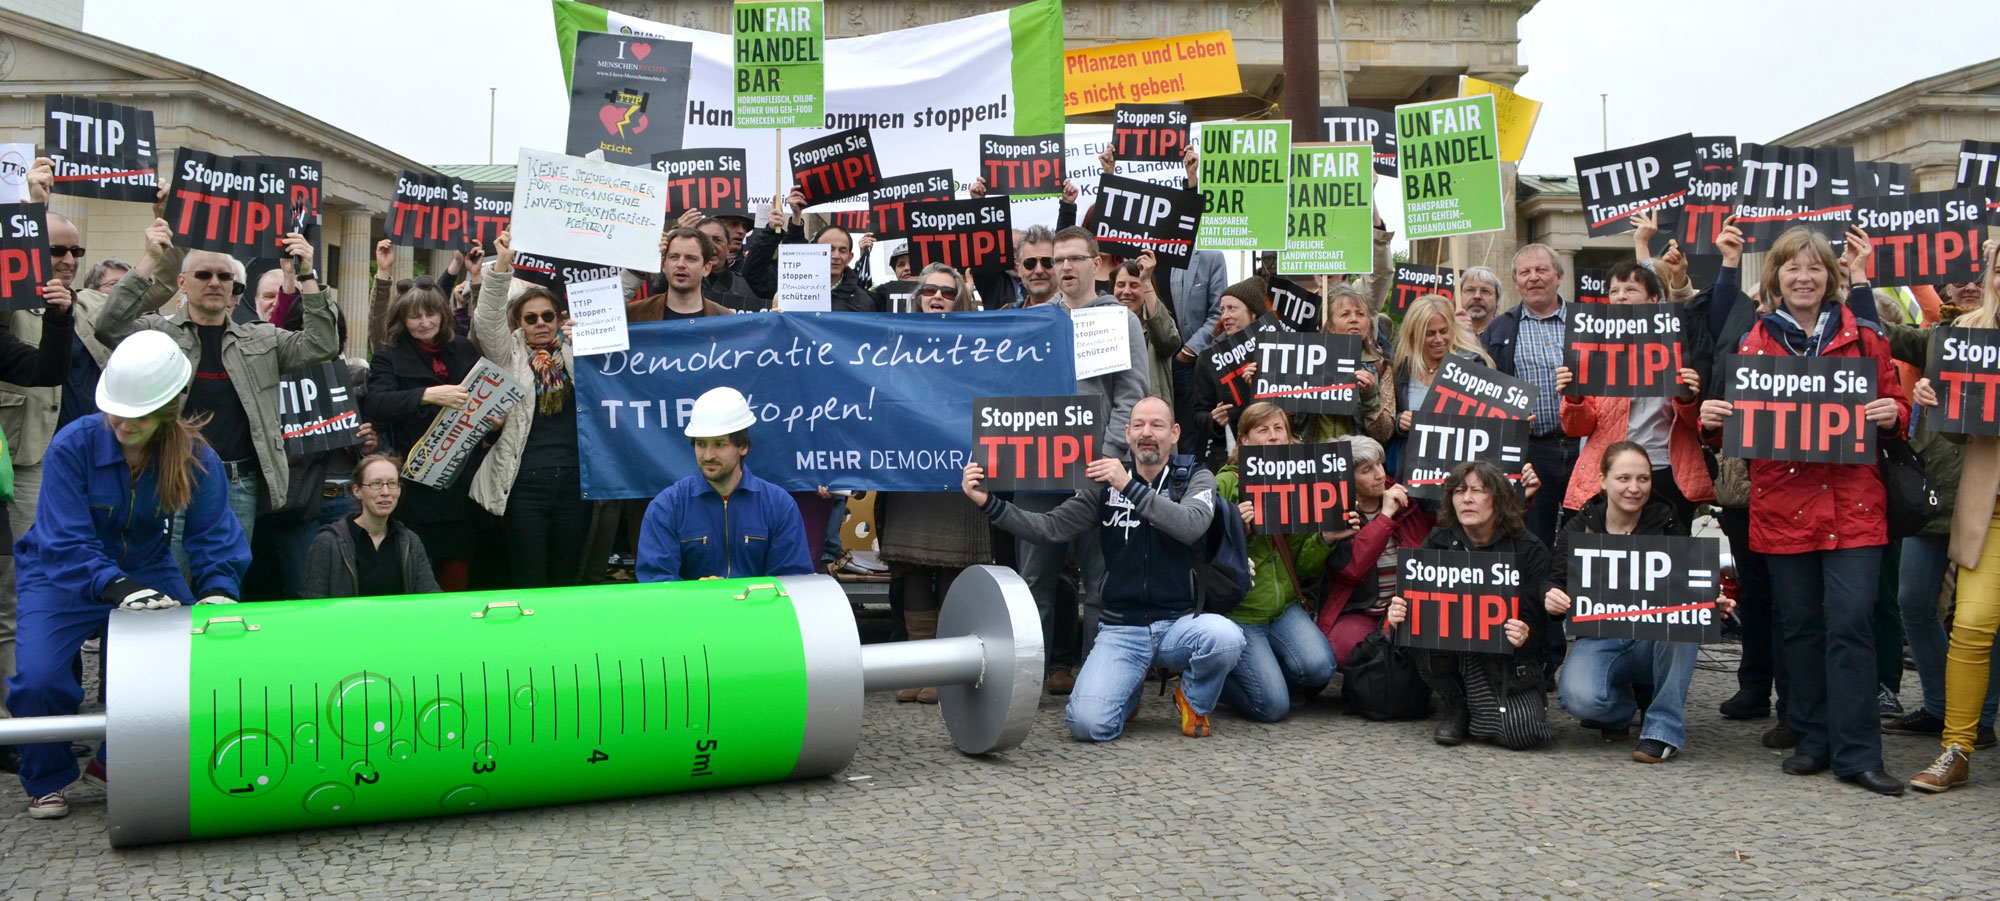 ttip_protest_germany-1